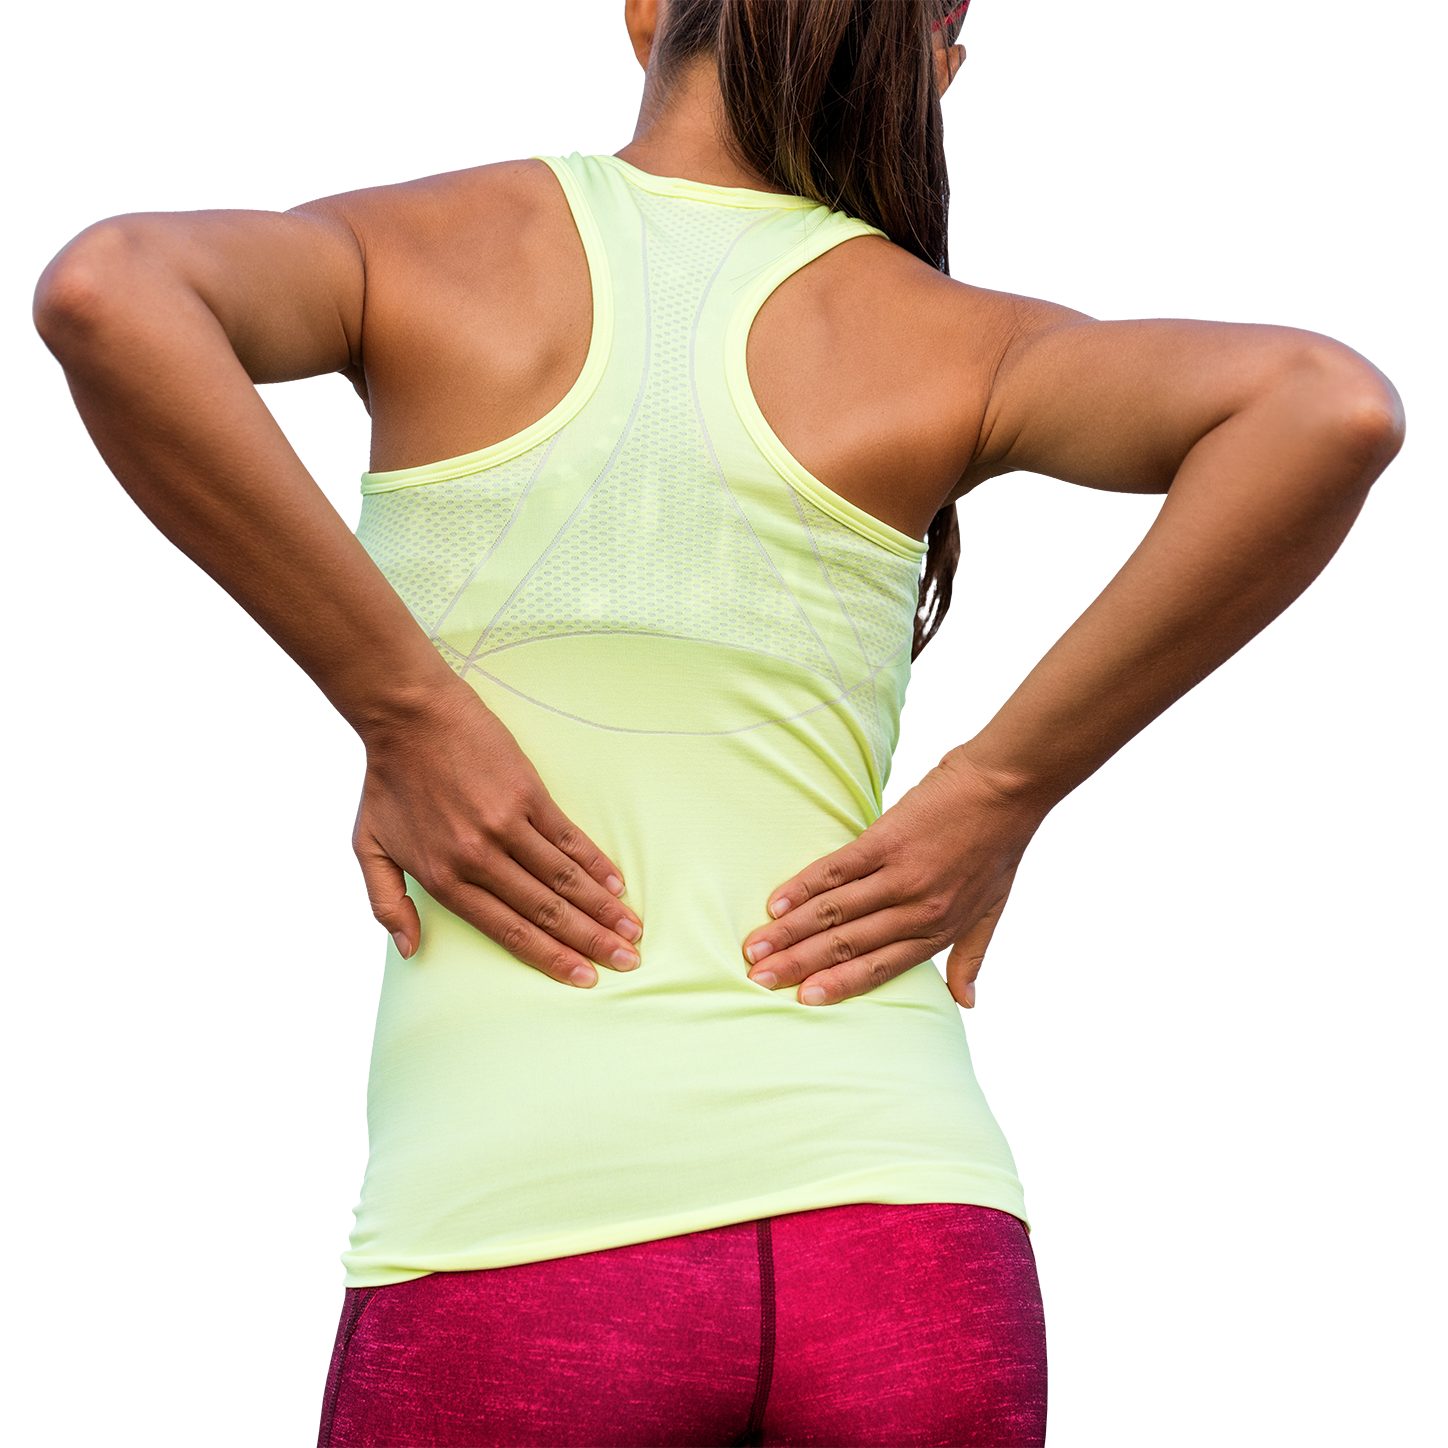 services for back pain in naples